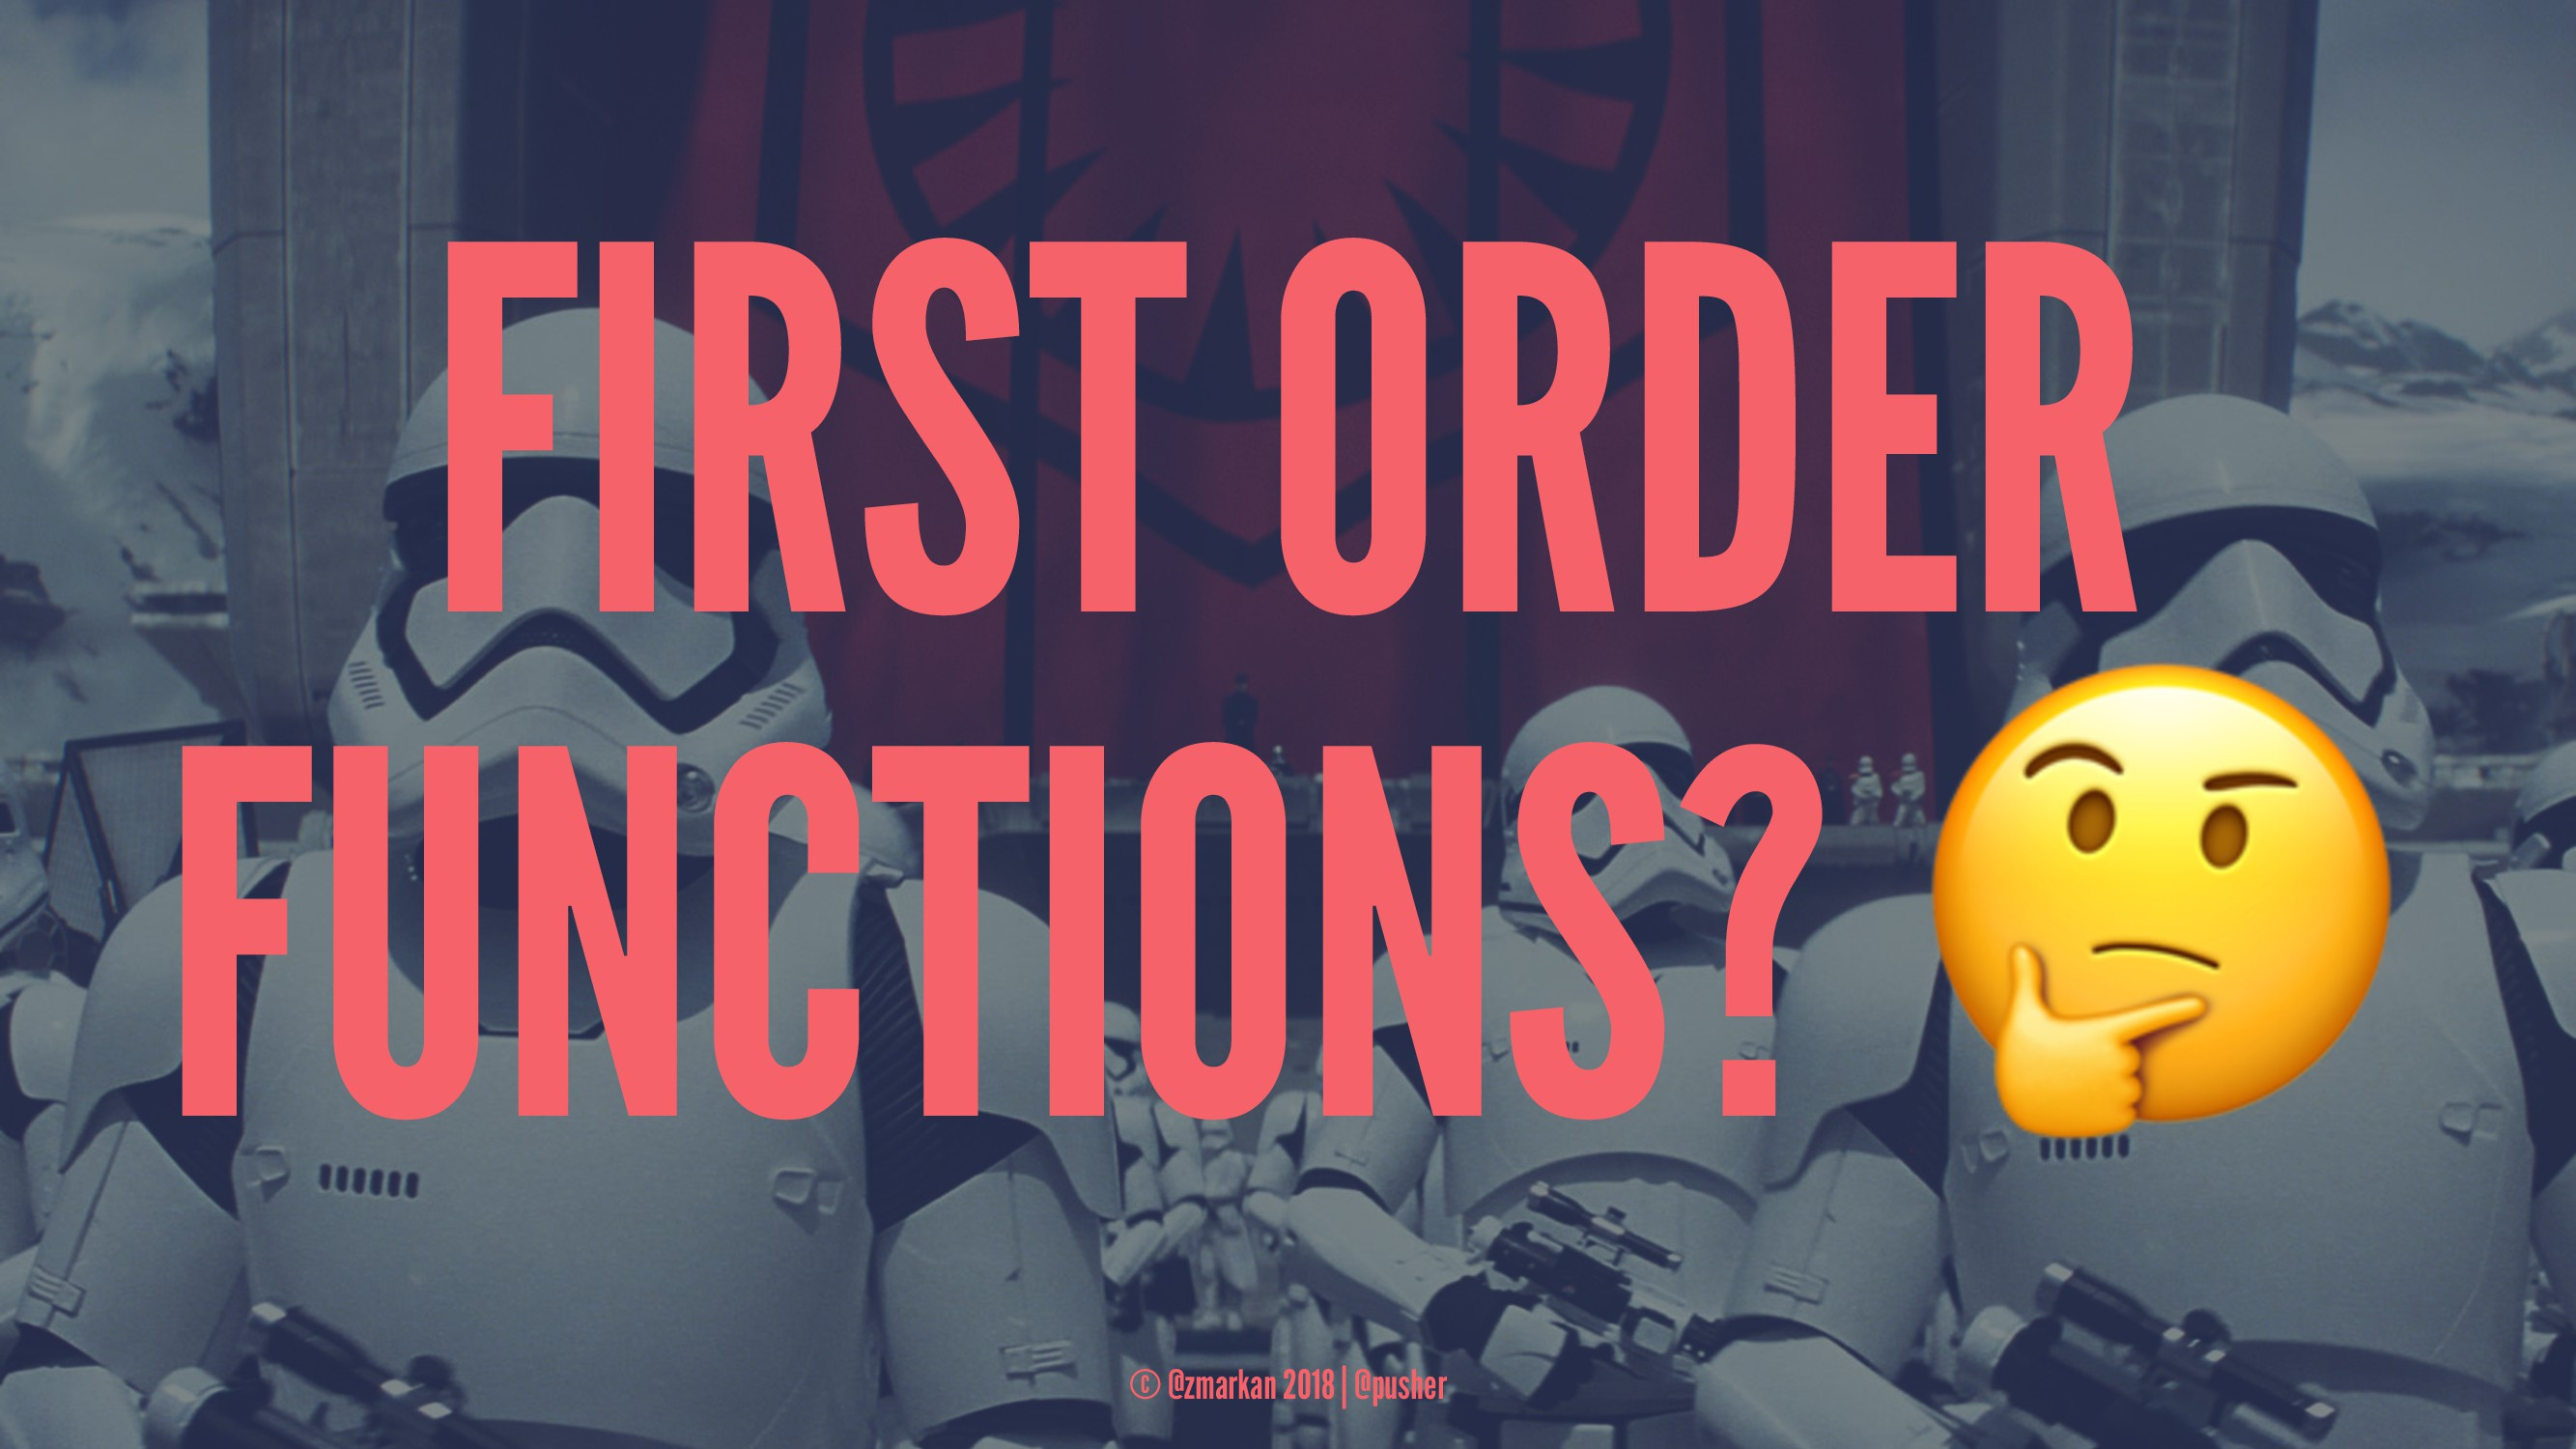 FIRST ORDER FUNCTIONS? © @zmarkan 2018 | @pusher